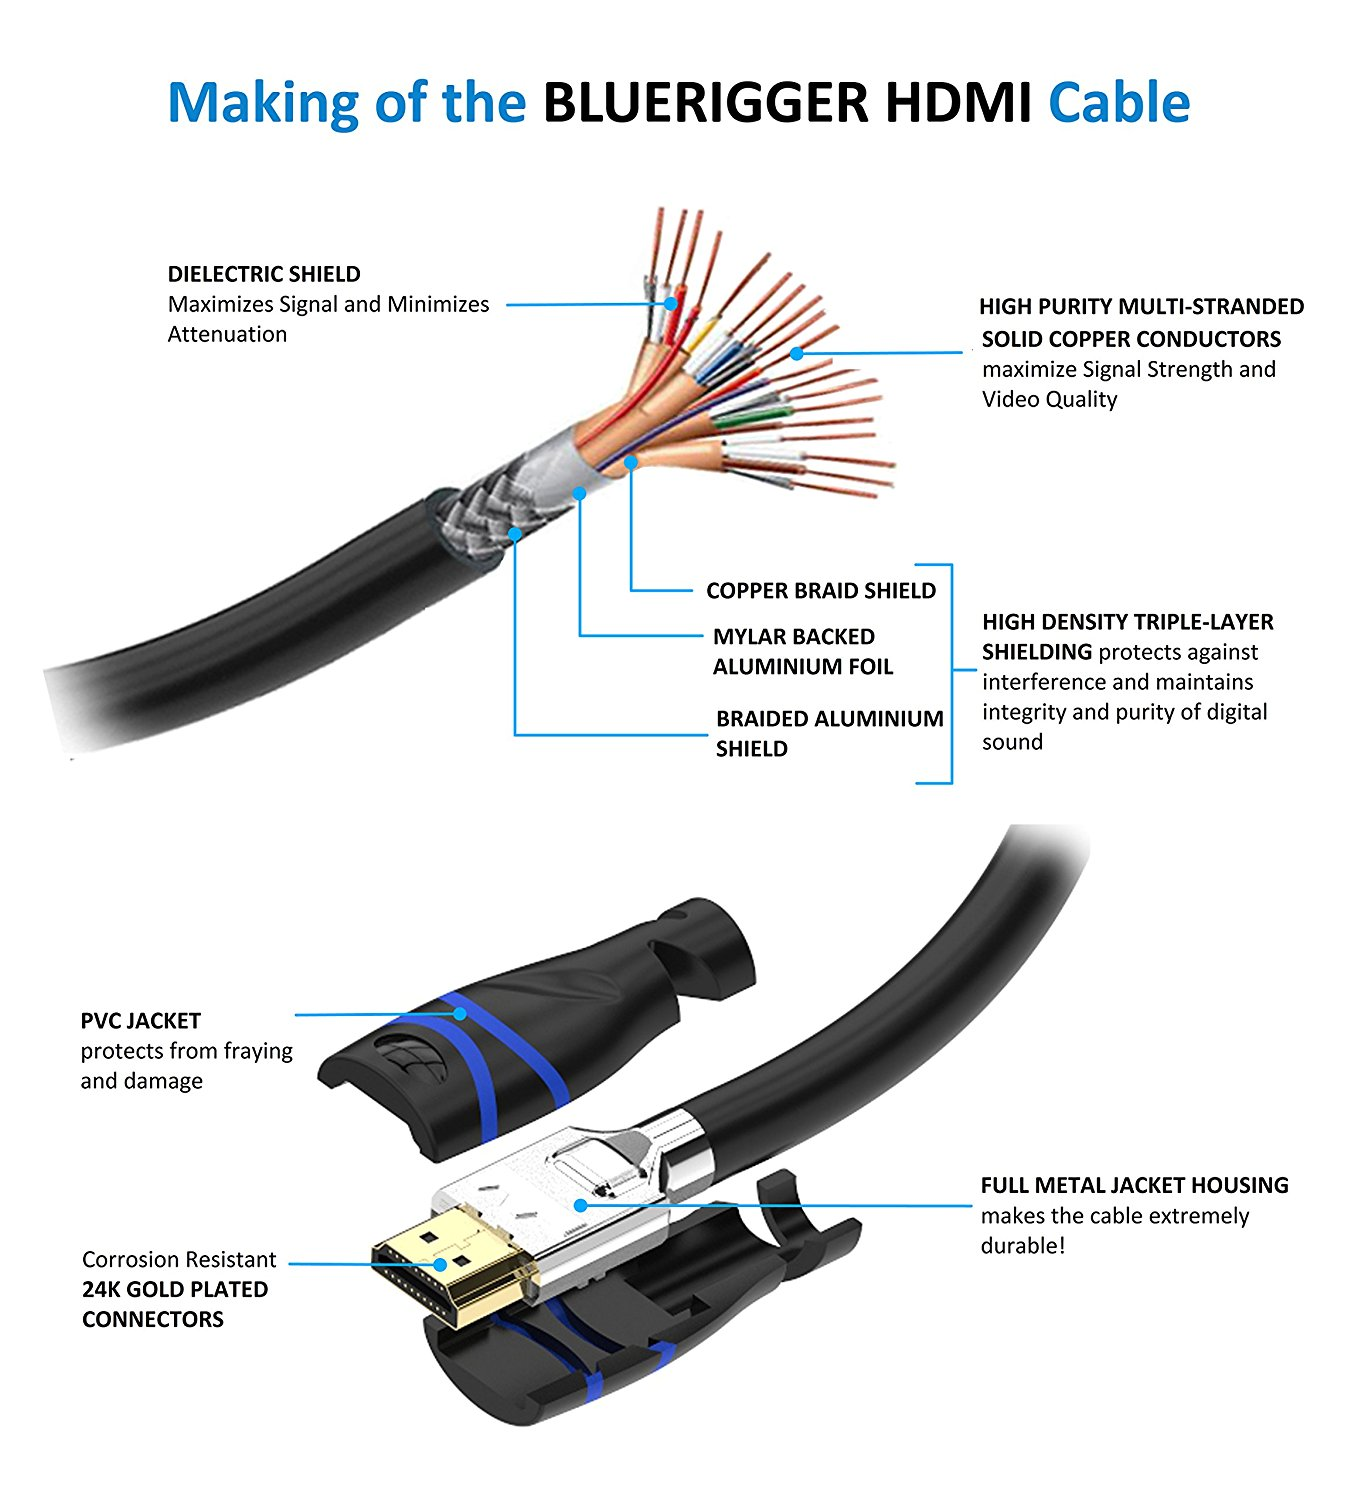 mini usb wire diagram new bluerigger in-wall high speed hdmi cable - cl3 rated ... mini cable wire diagram us #1